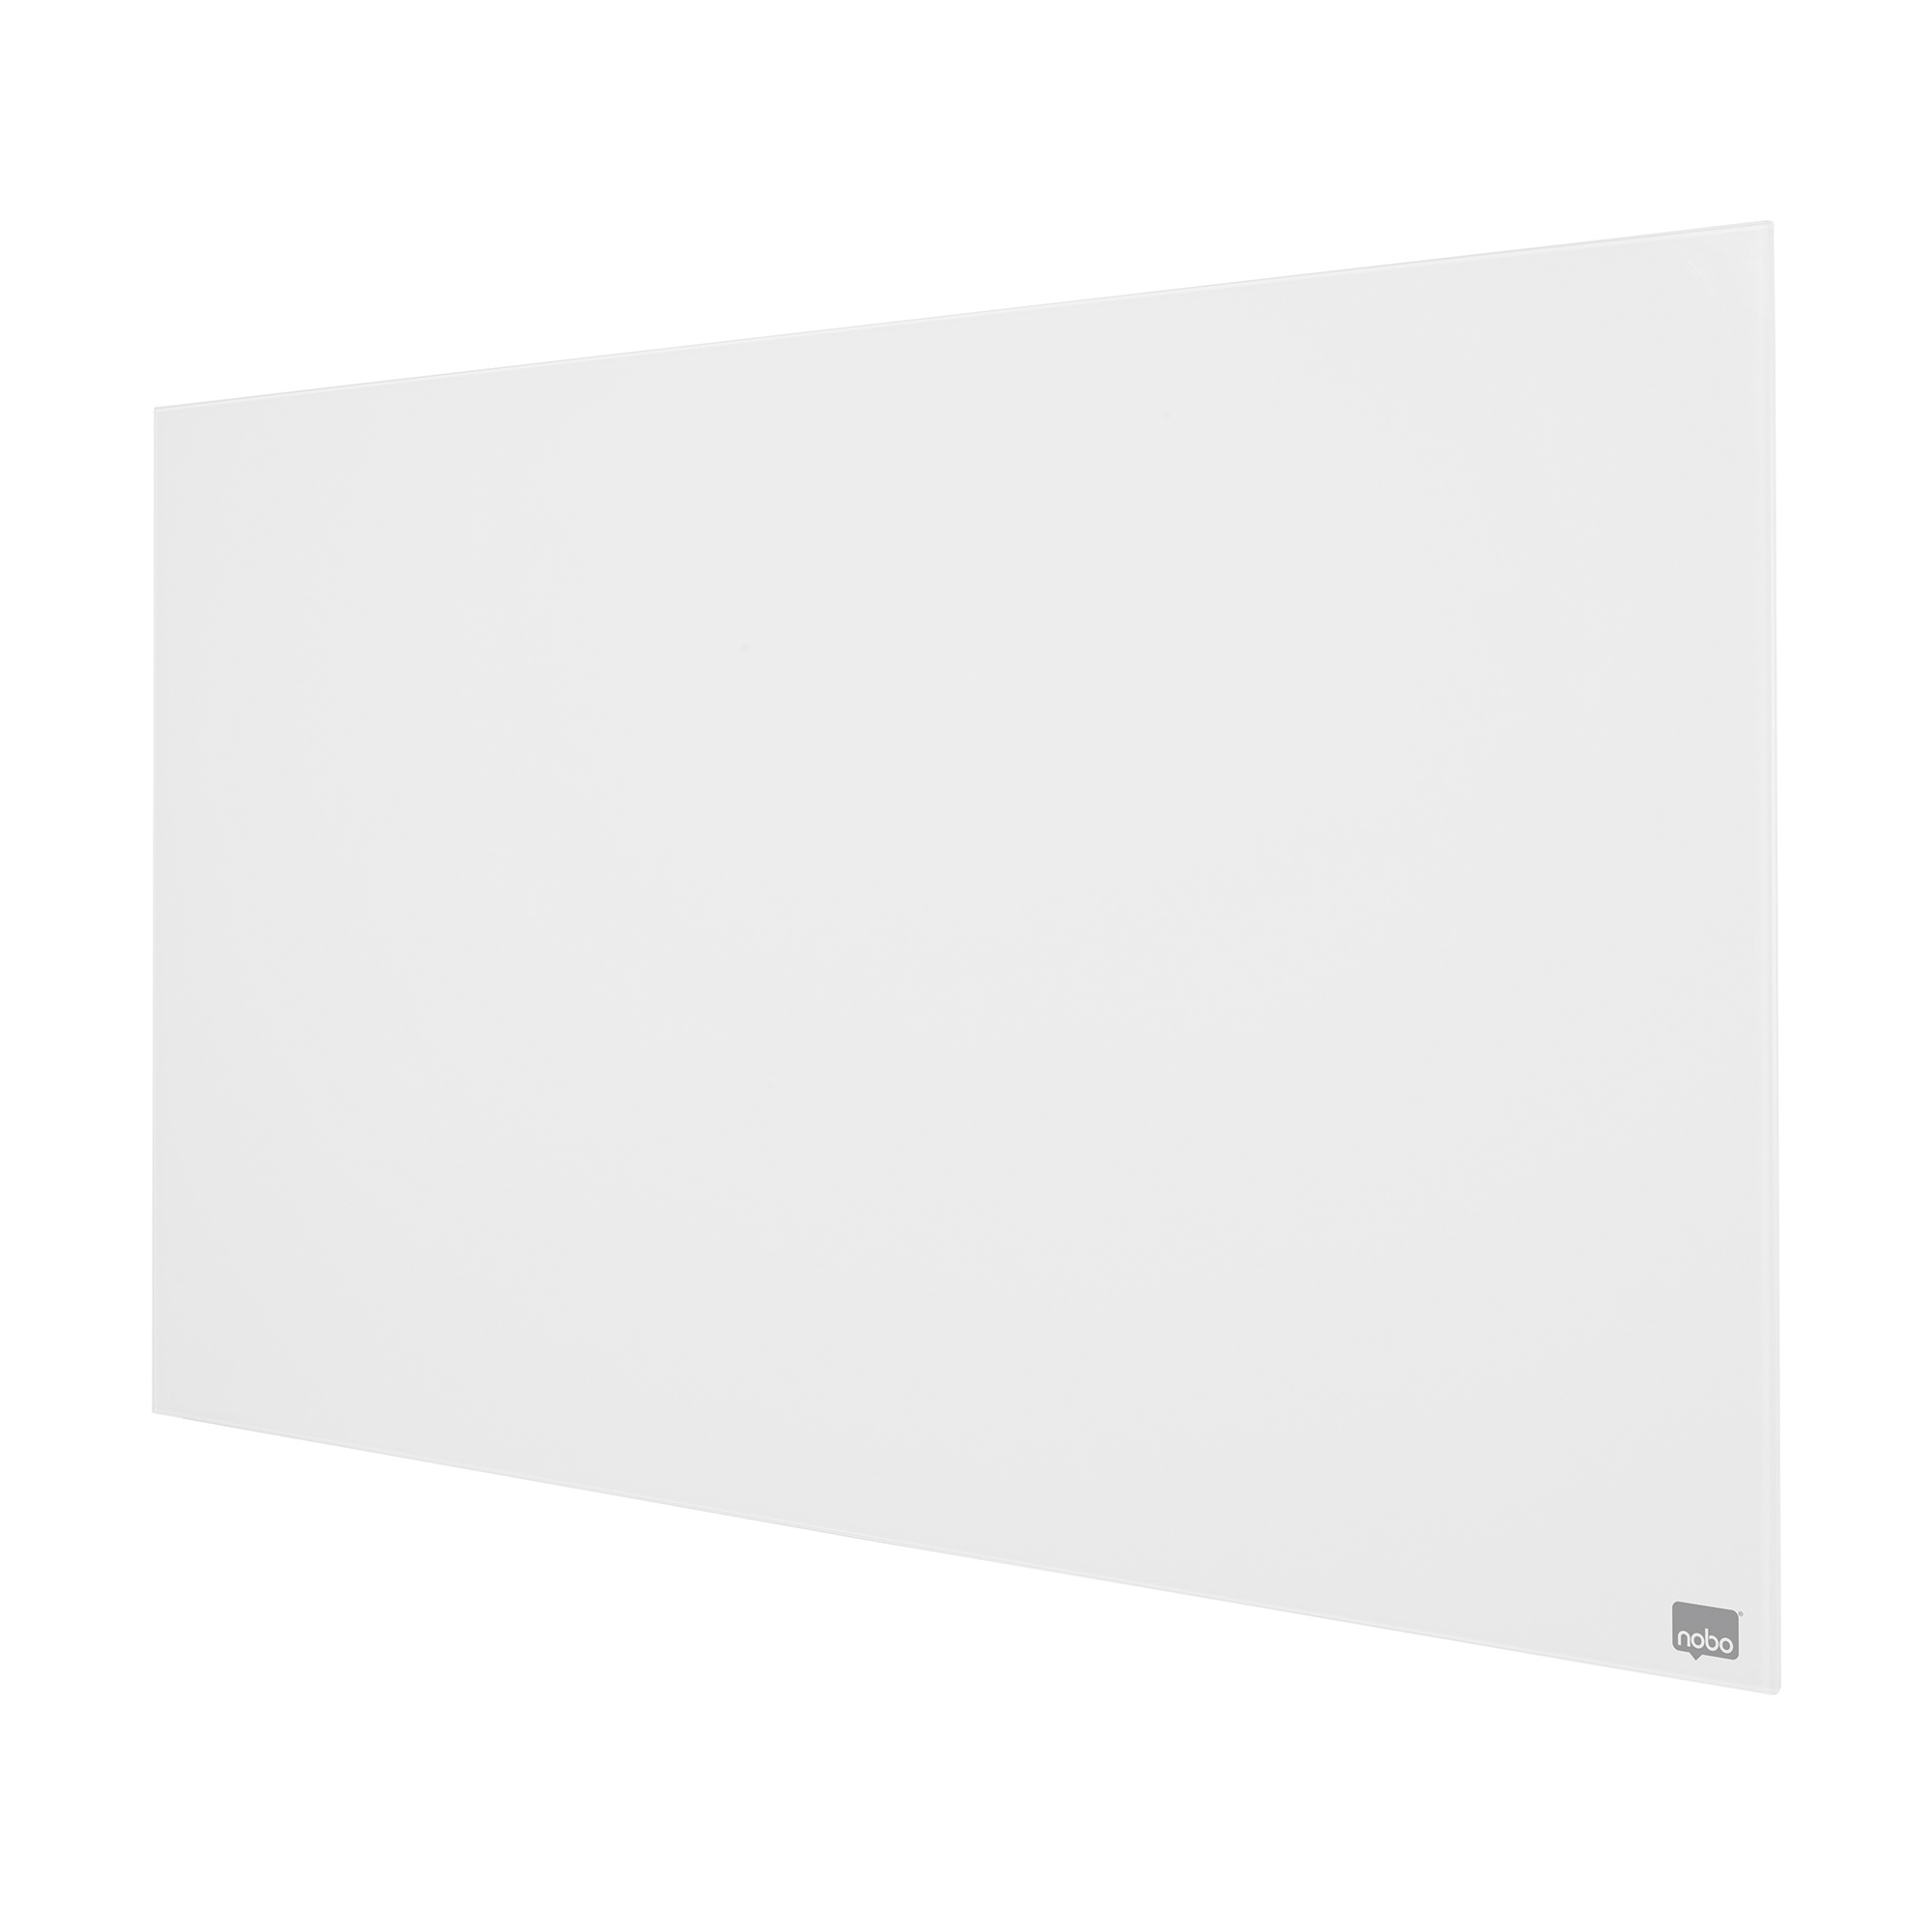 Nobo Widescreen 45 inch WhiteBrd Glass Magnetic Scratch-Resistant Fixings Inc W993xH559mm Wht Ref 1905176